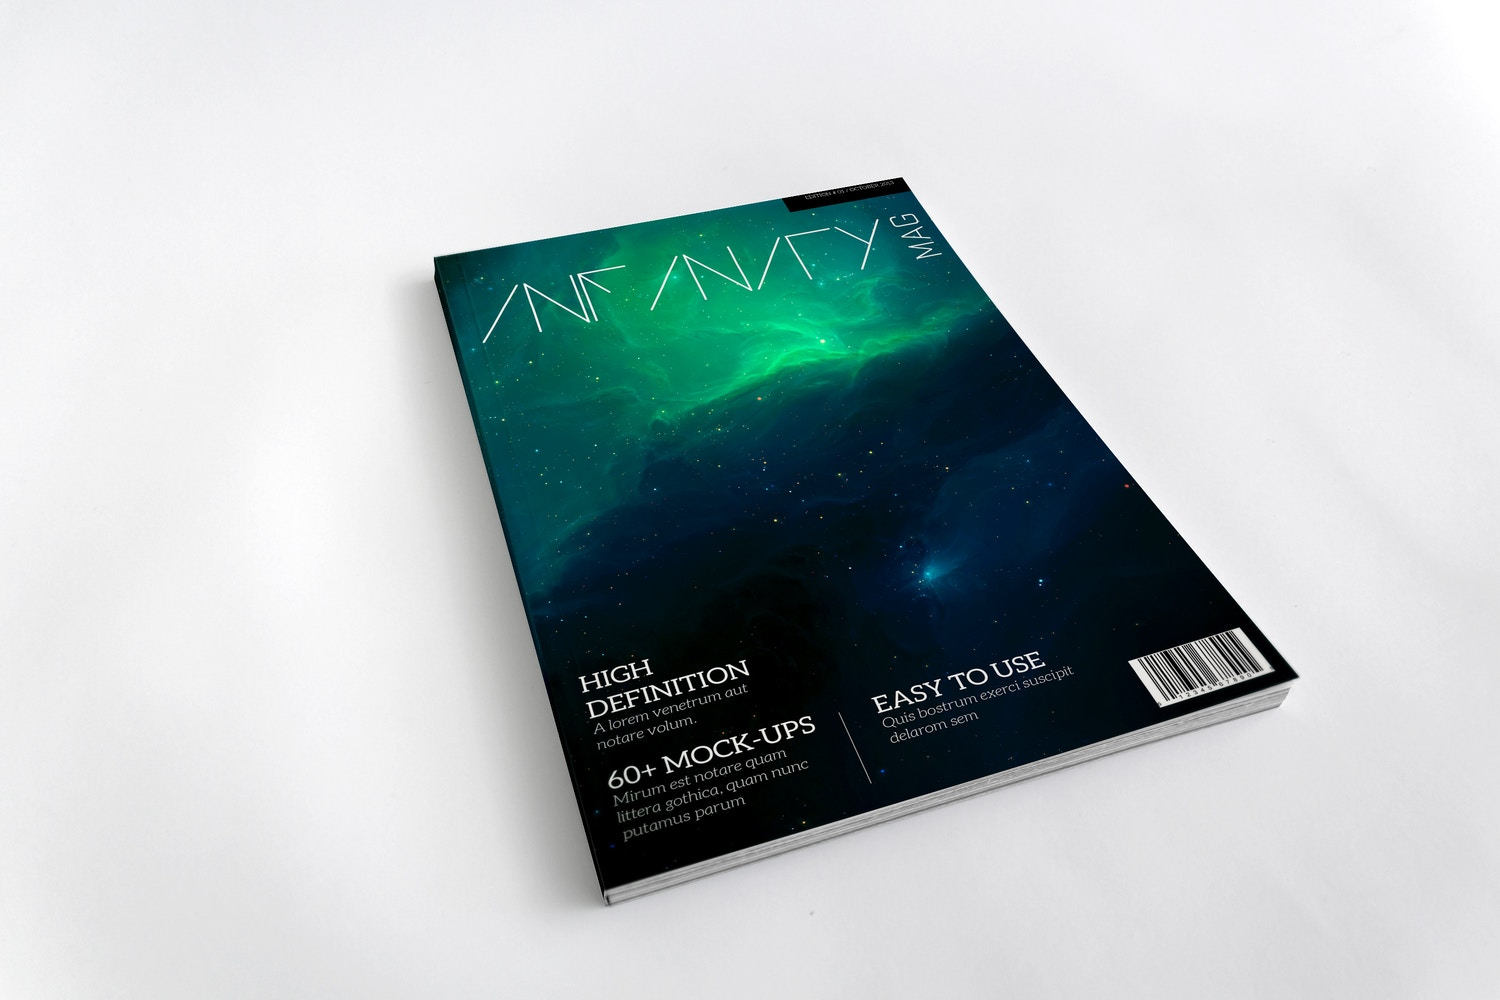 A4 Cover Magazine Mockup by Original Mockups on Original Mockups